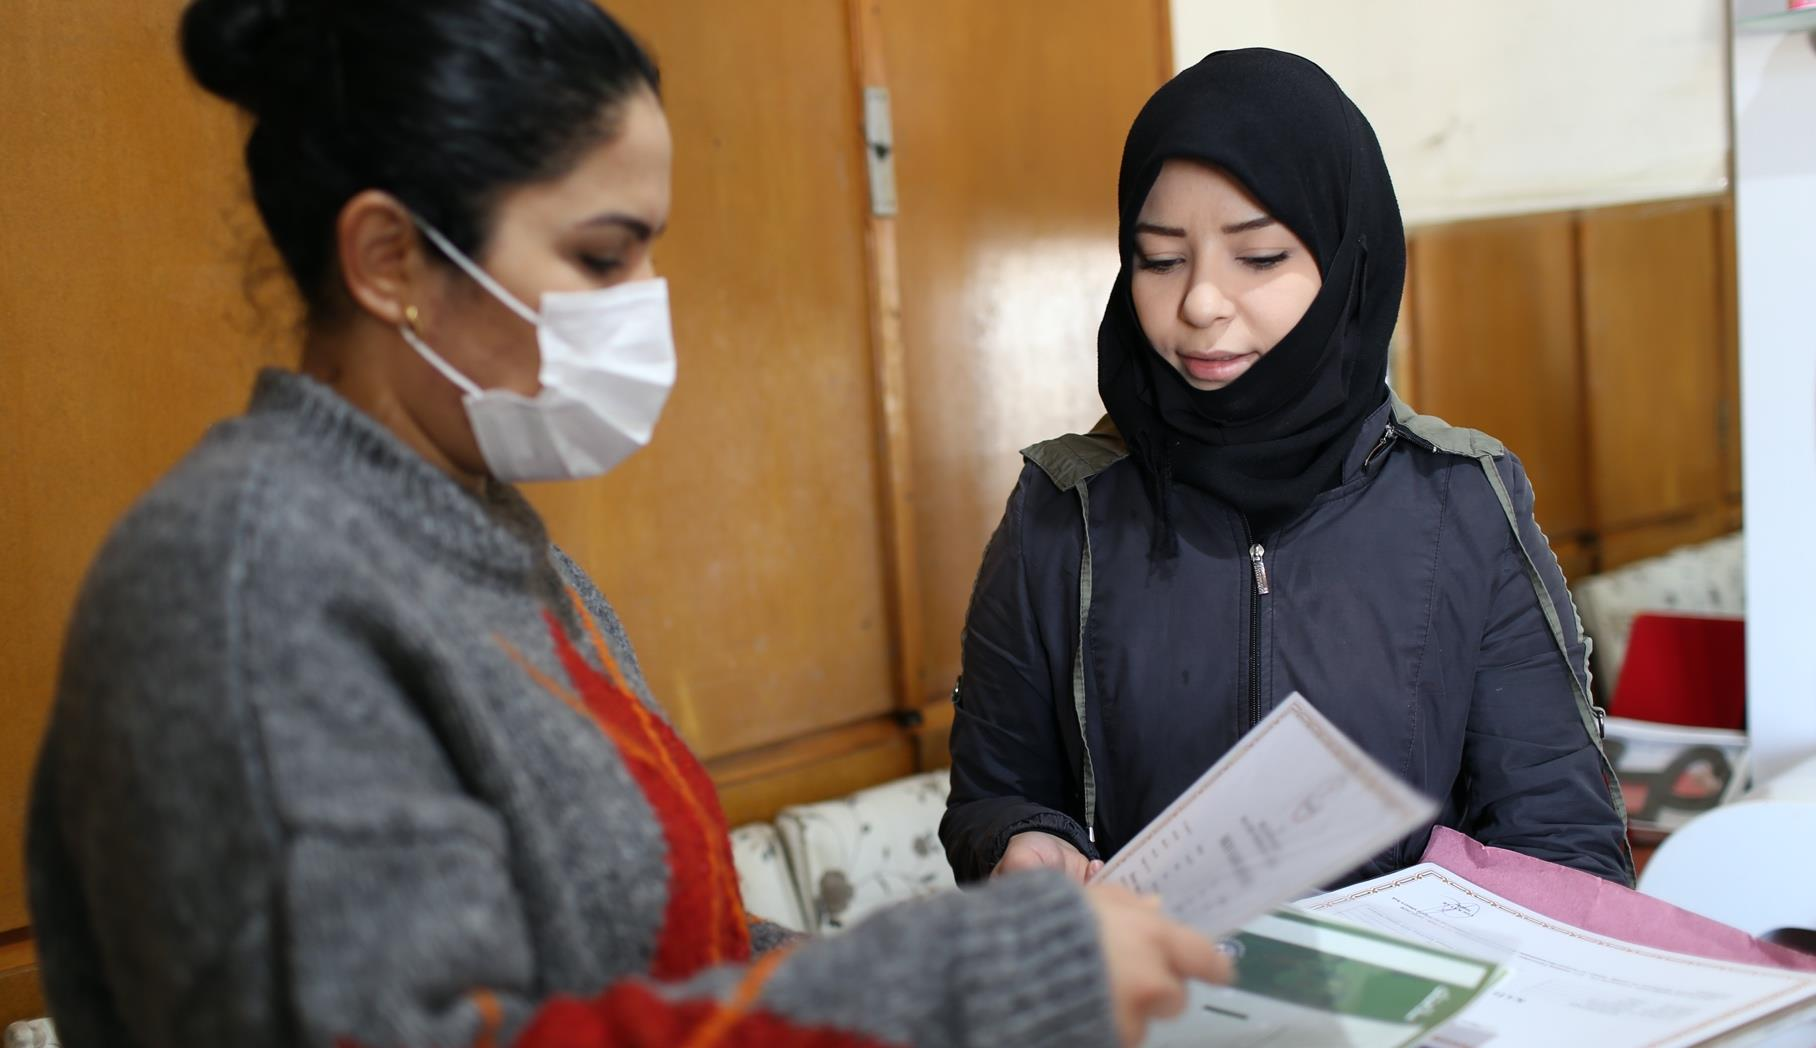 A woman wearing a black hijab approaches another woman, who is wearing a facemask and looking through papers.